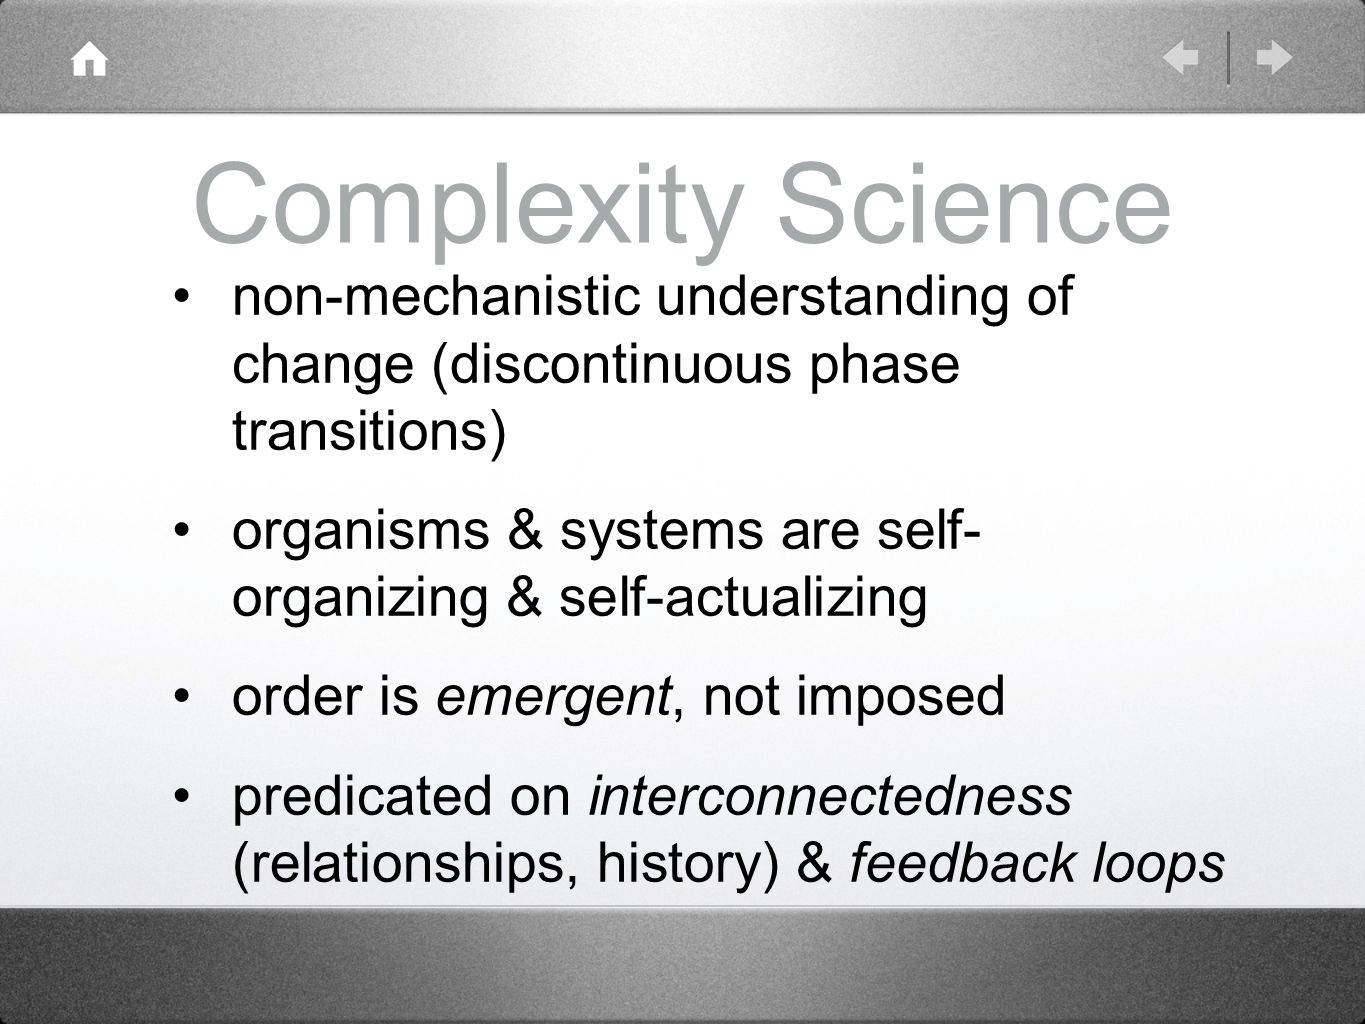 Complexity Science non-mechanistic understanding of change (discontinuous phase transitions) organisms & systems are self- organizing & self-actualizing order is emergent, not imposed predicated on interconnectedness (relationships, history) & feedback loops